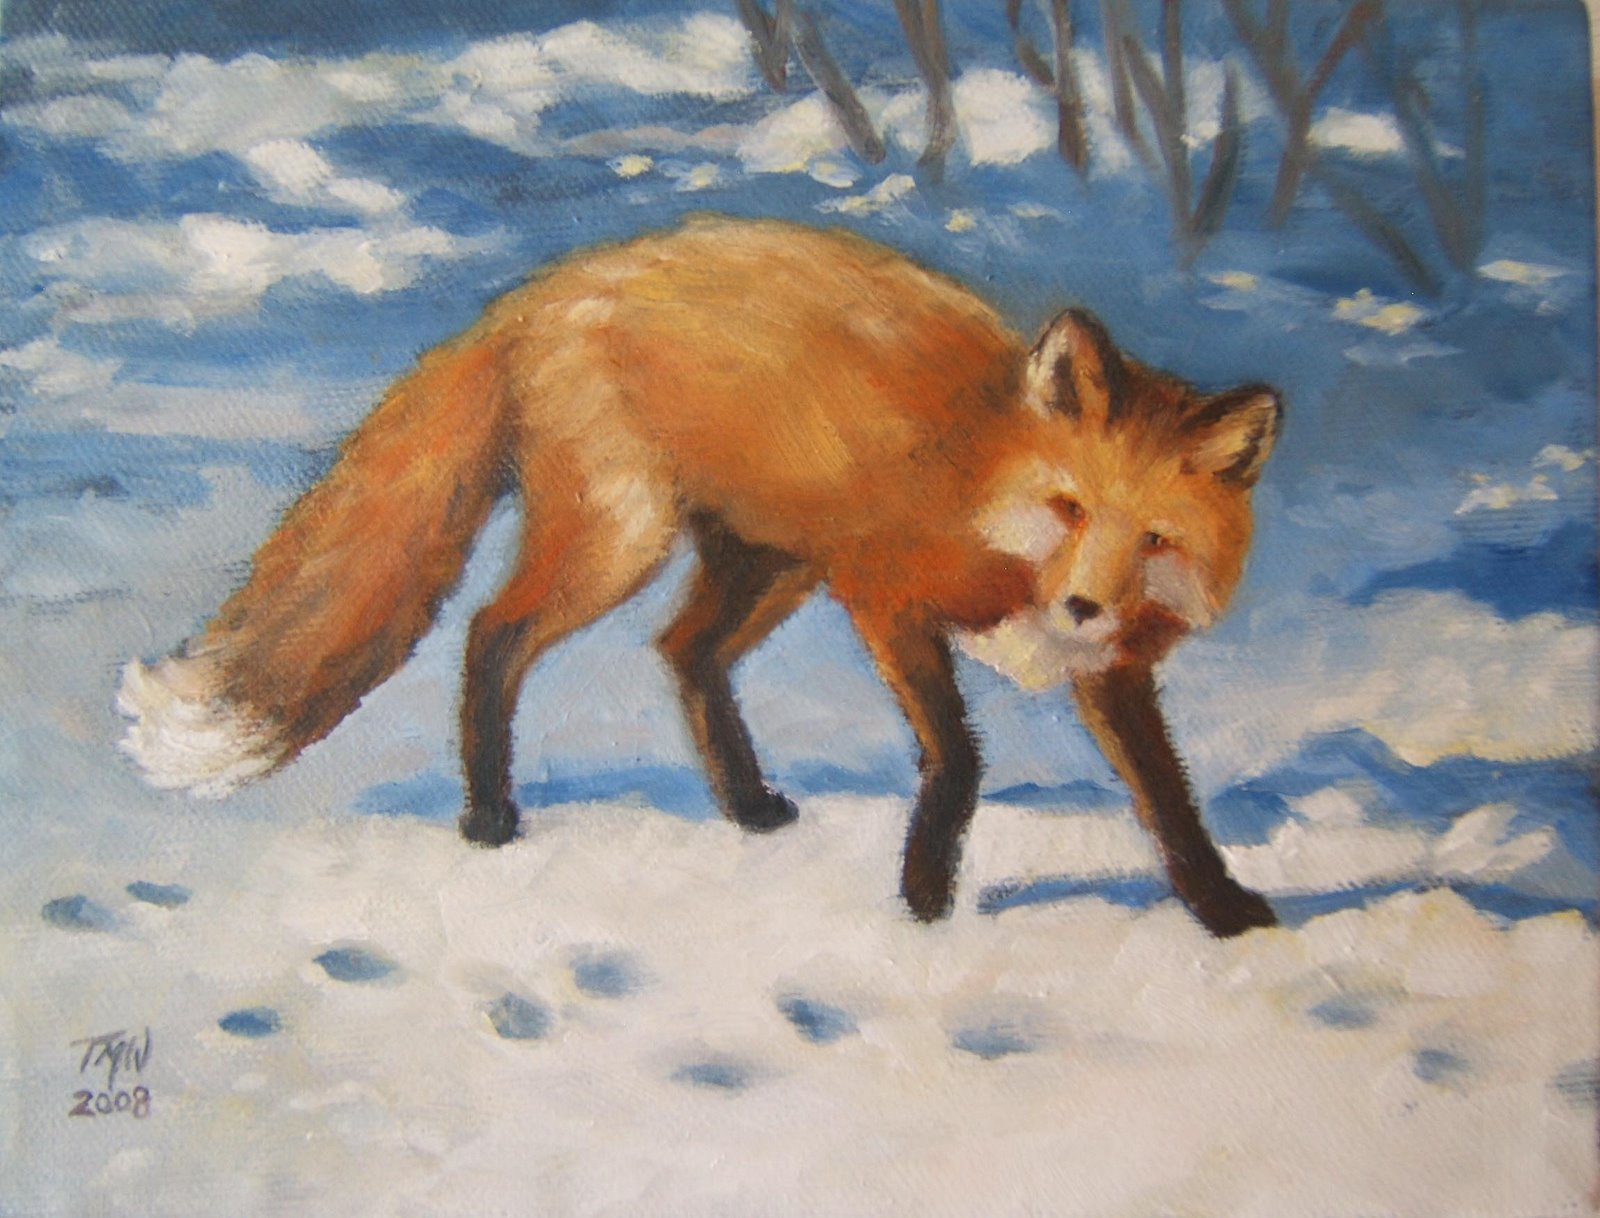 """On the Trail"" 6""x 8""oil on canvas, ©2008 Tina M Welter   A red fox is following footprints in the snow."